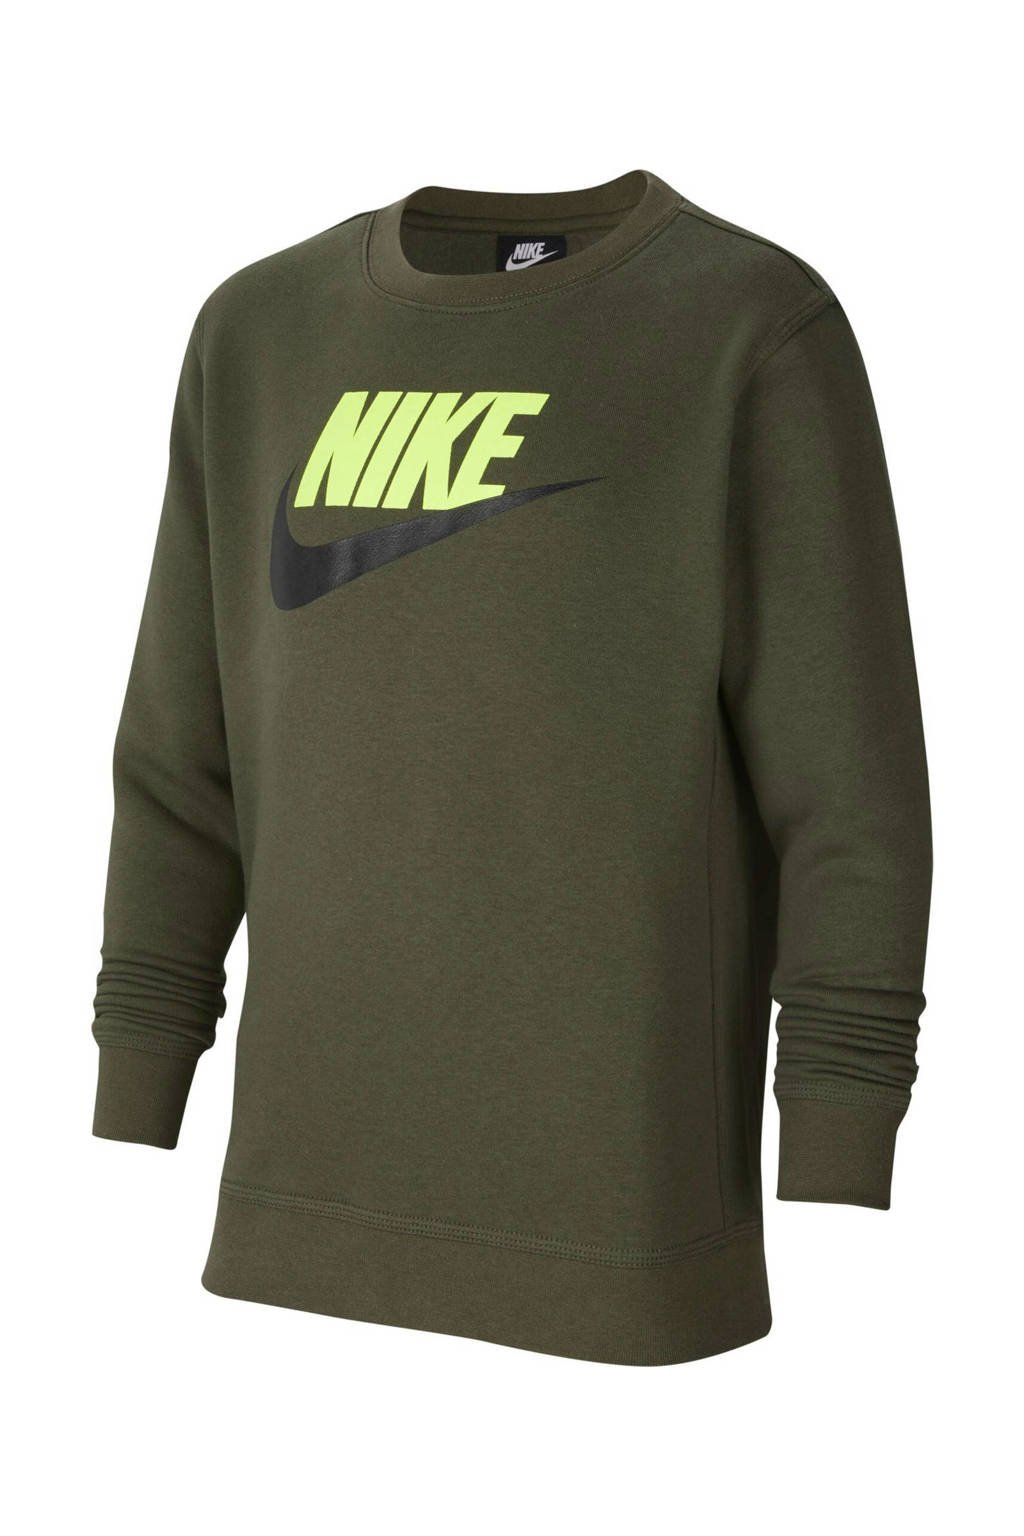 Nike Sweater kaki, Kaki